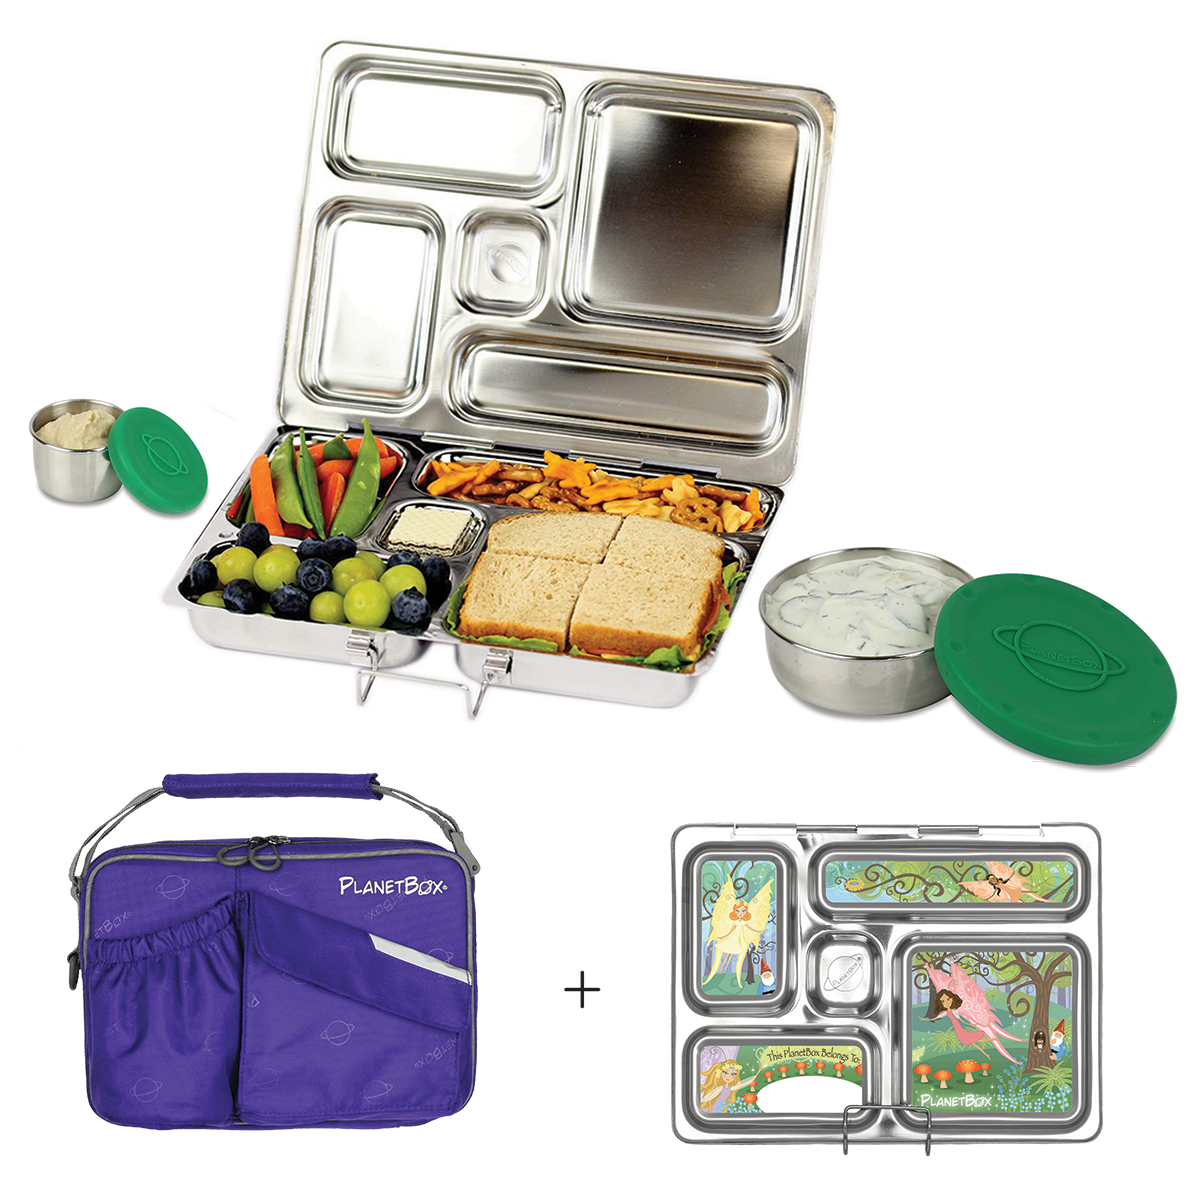 PlanetBox Rover Lunchbox - Purple Carry Bag with Fairies ...